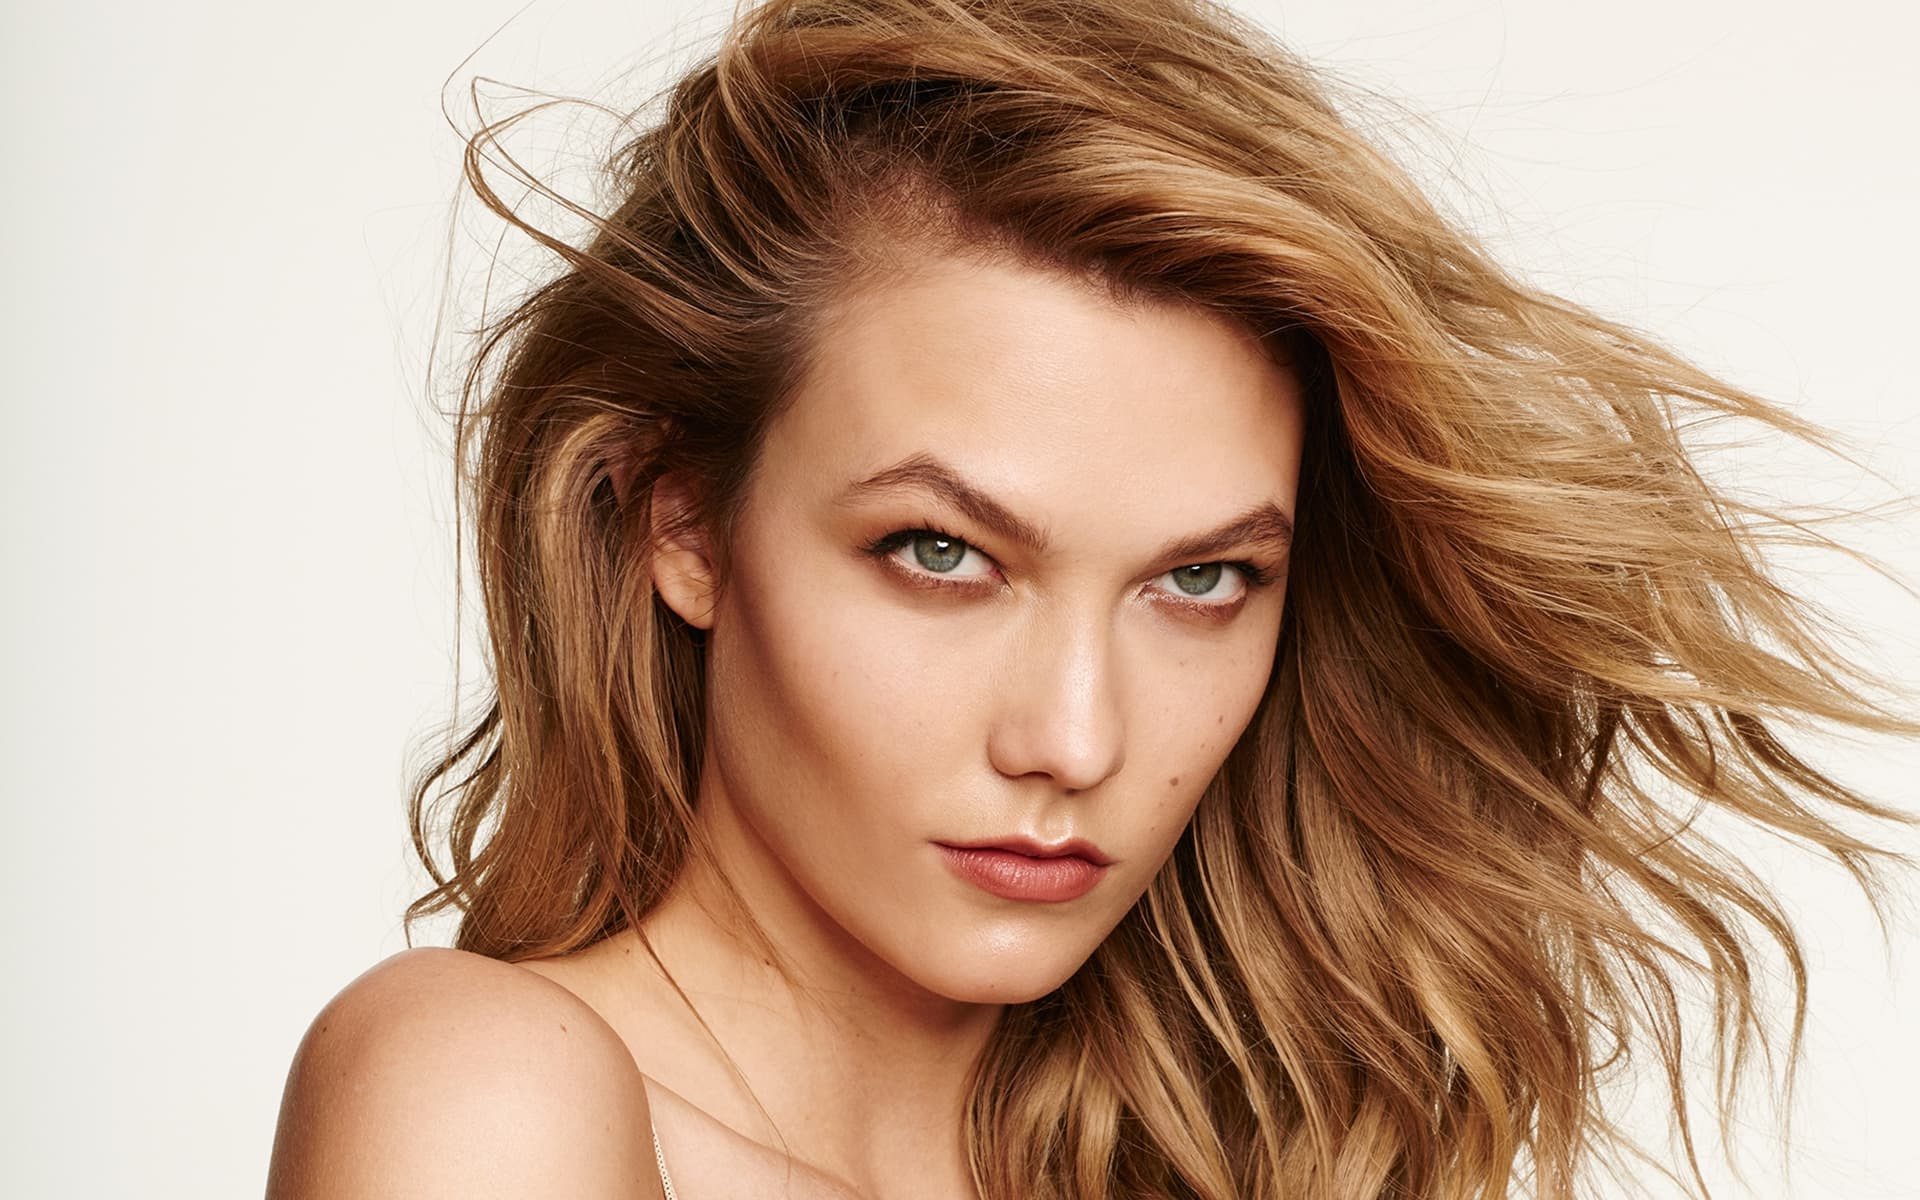 Hair Style Of Death: Karlie Kloss Wallpapers High Quality Hairstyles, Handbag